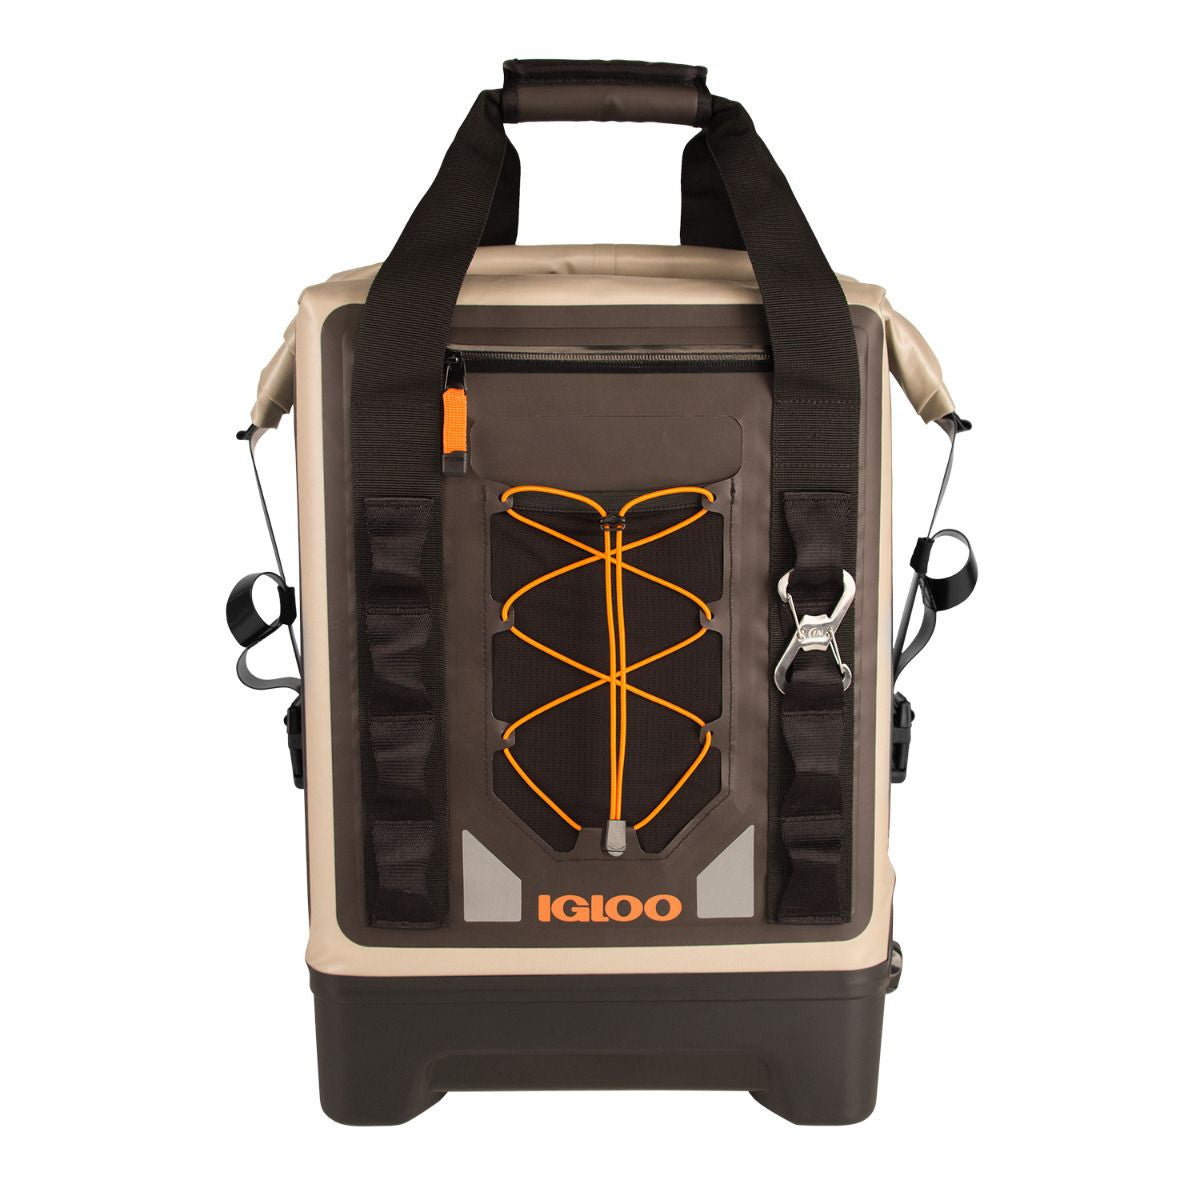 Large View | Sportsman Backpack Welded Cooler in Tan at Igloo Cooler Backpacks